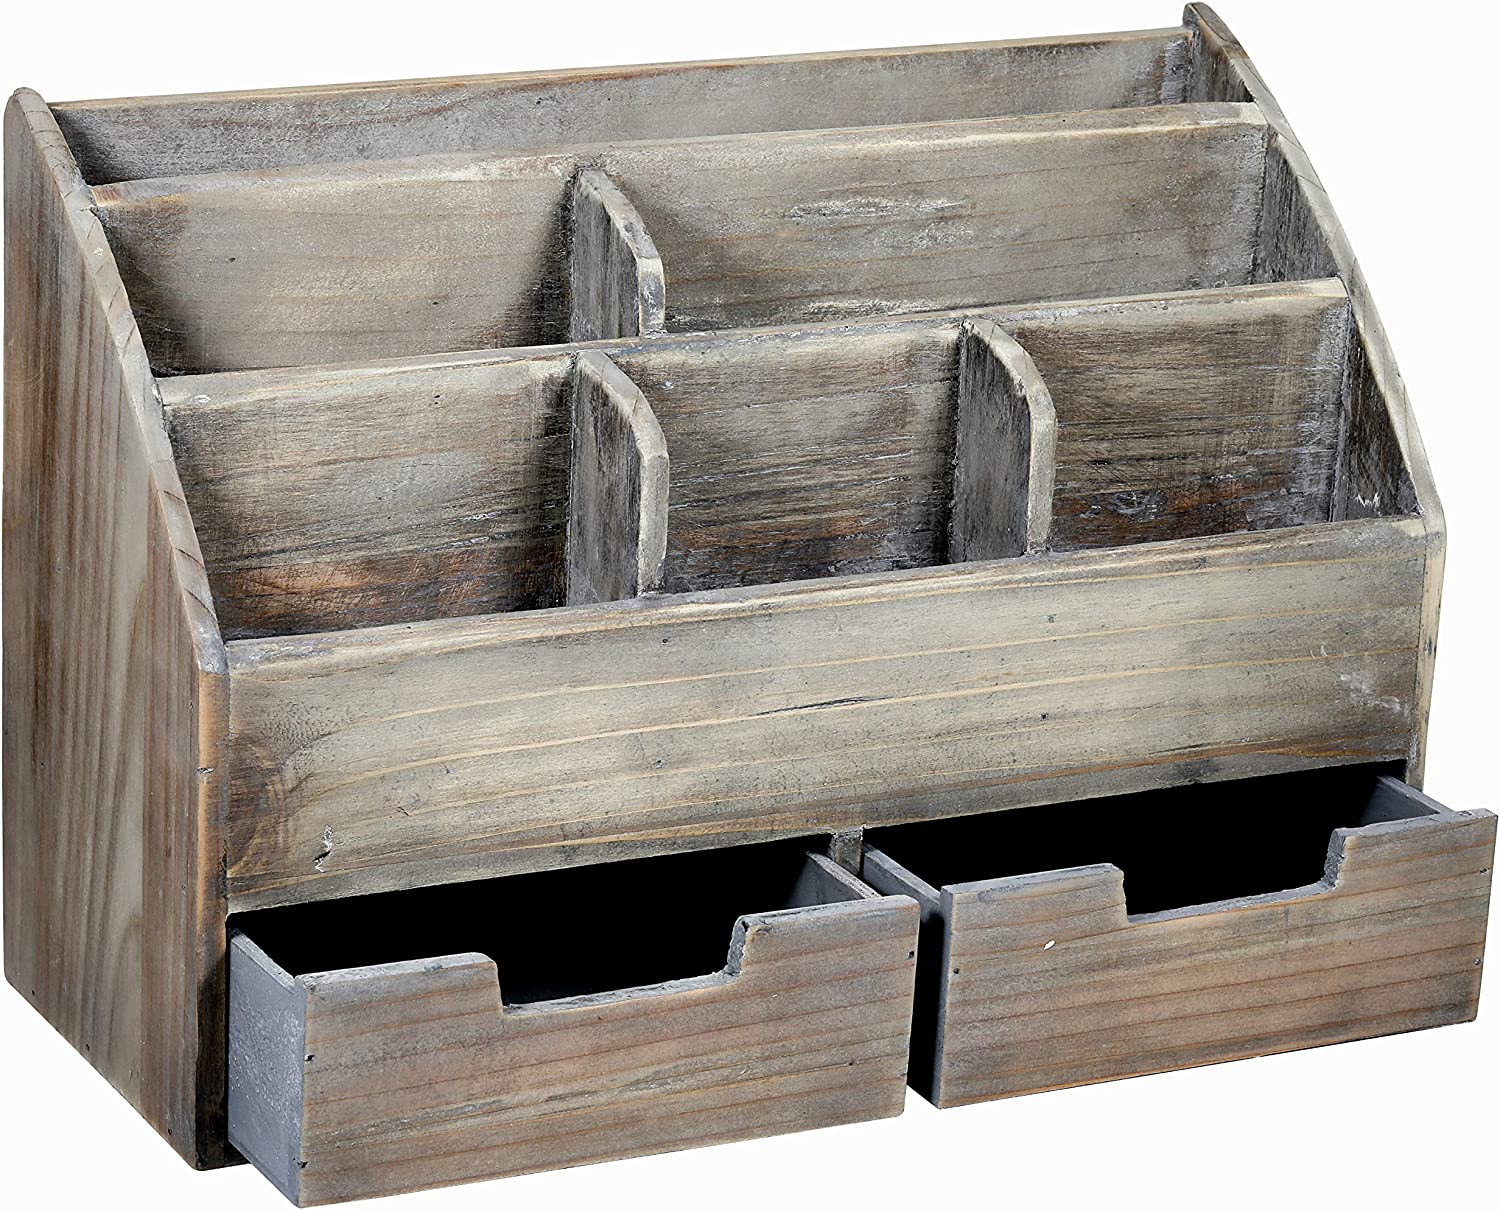 URFORESTIC Rustic Wooden Office Desk Organizer & Mail Rack for Desktop, Tabletop, or Counter - Distressed Torched Wood – for Office Supplies, Desk Accessories, Mail